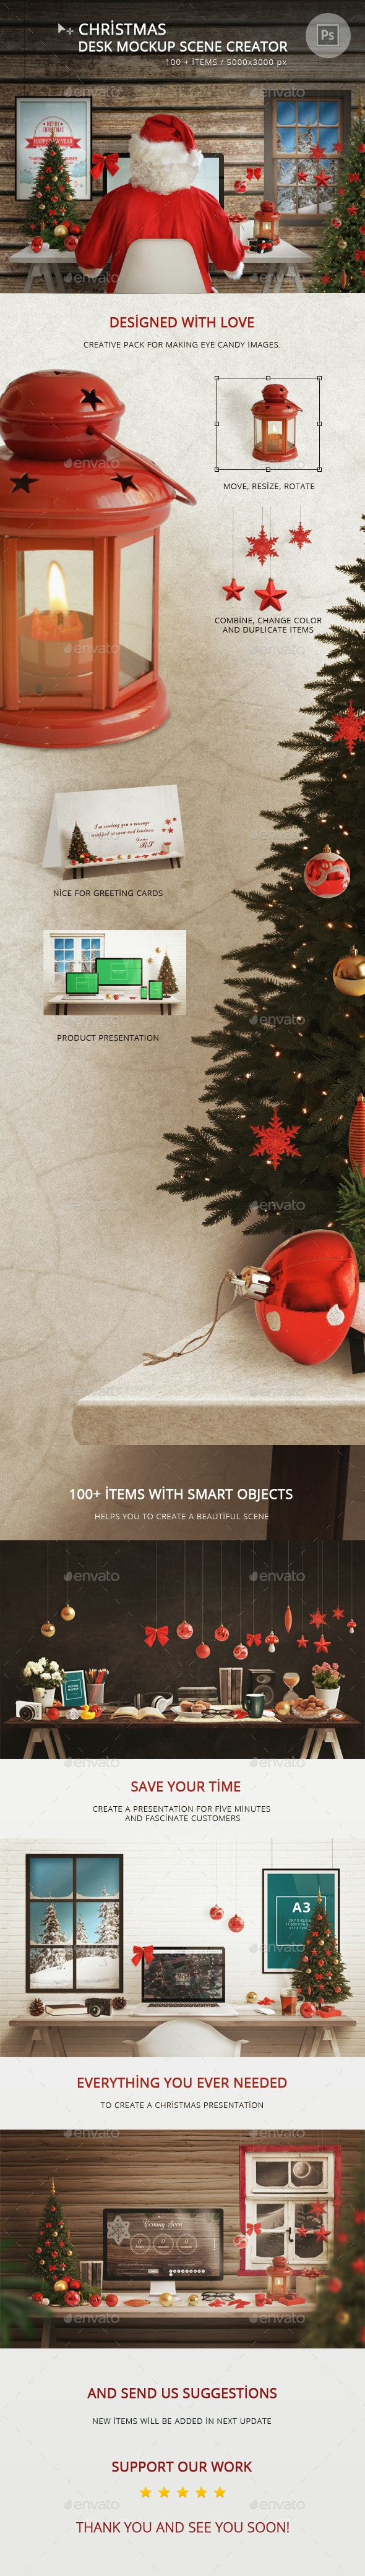 Christmas Desk Mockup Scene Creator - Hero Images Graphics